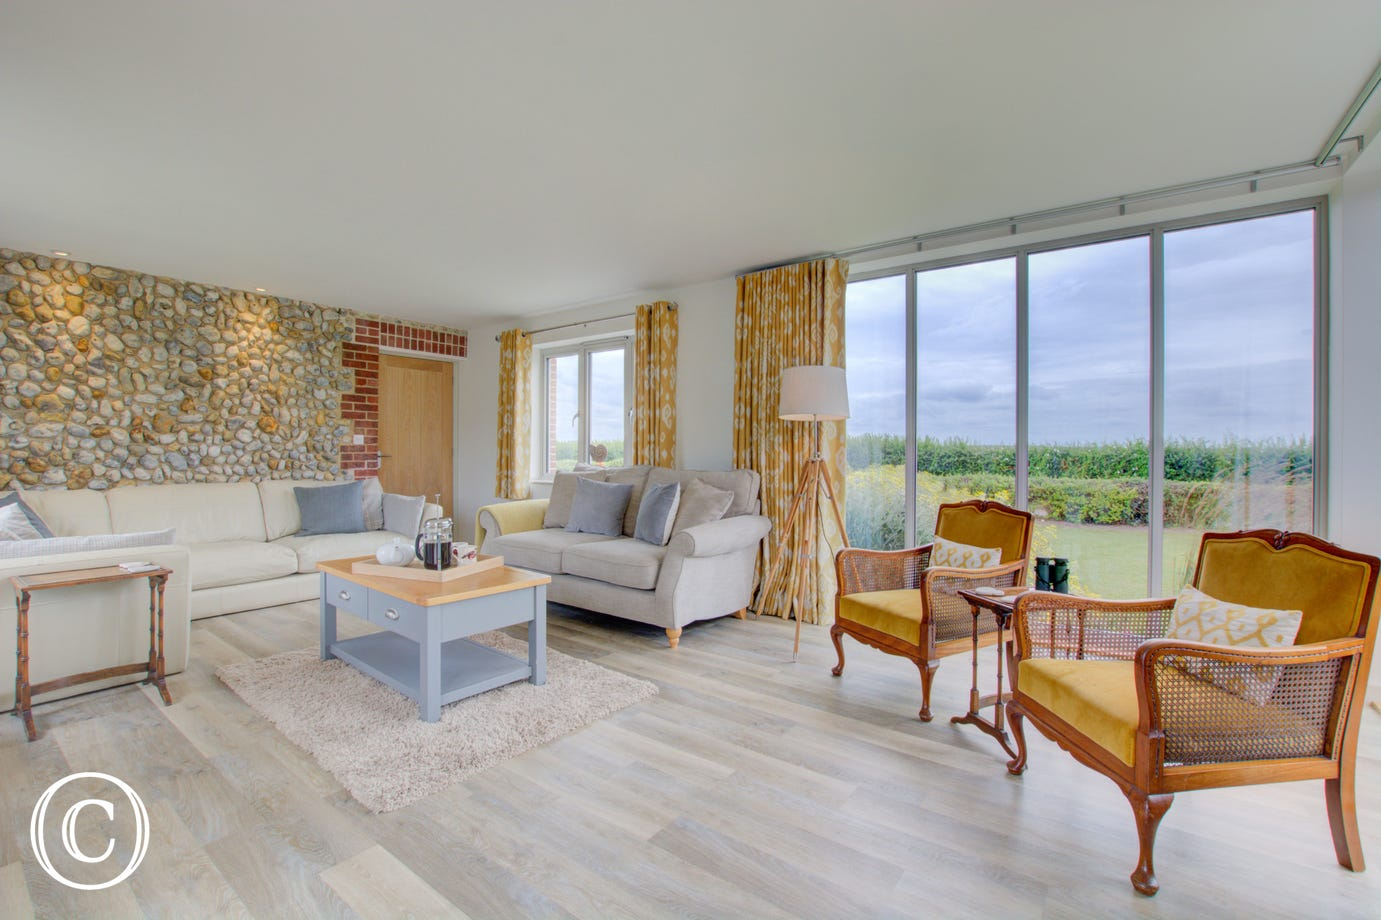 Beautiful sitting room with views of the garden